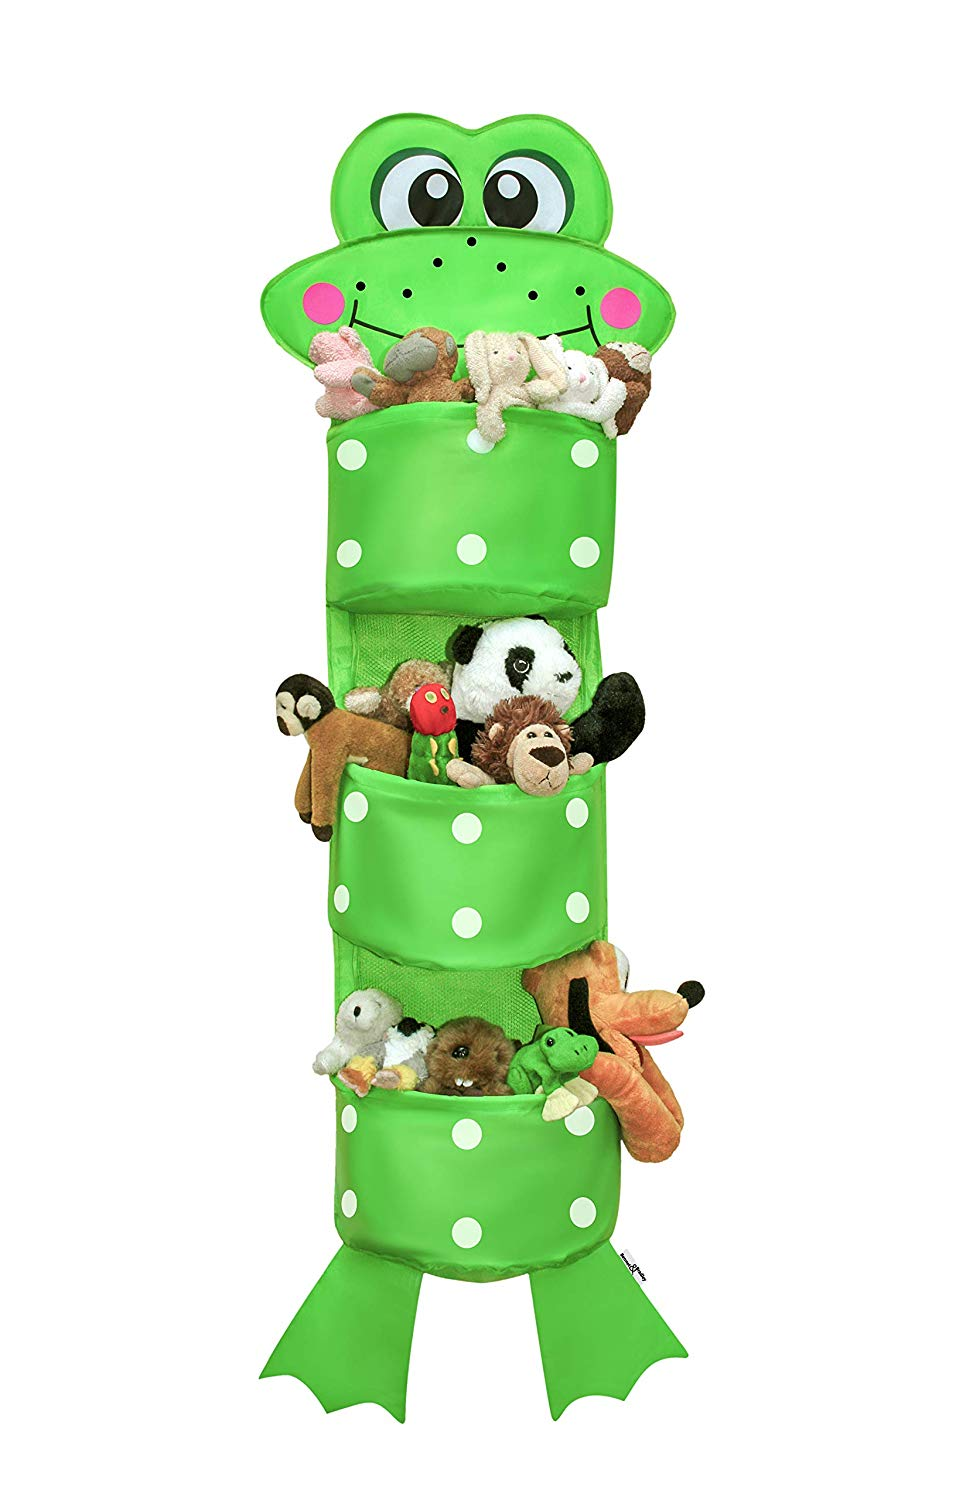 Hanging Toy Storage | SALE-45%| Kids Hanging Toy Storage |Closet Organizer for Baby Clothes, Stuffed Animal Storage. Perfect Gift | 100% Guarantee | Includes Bonus & Luxury Gift Box